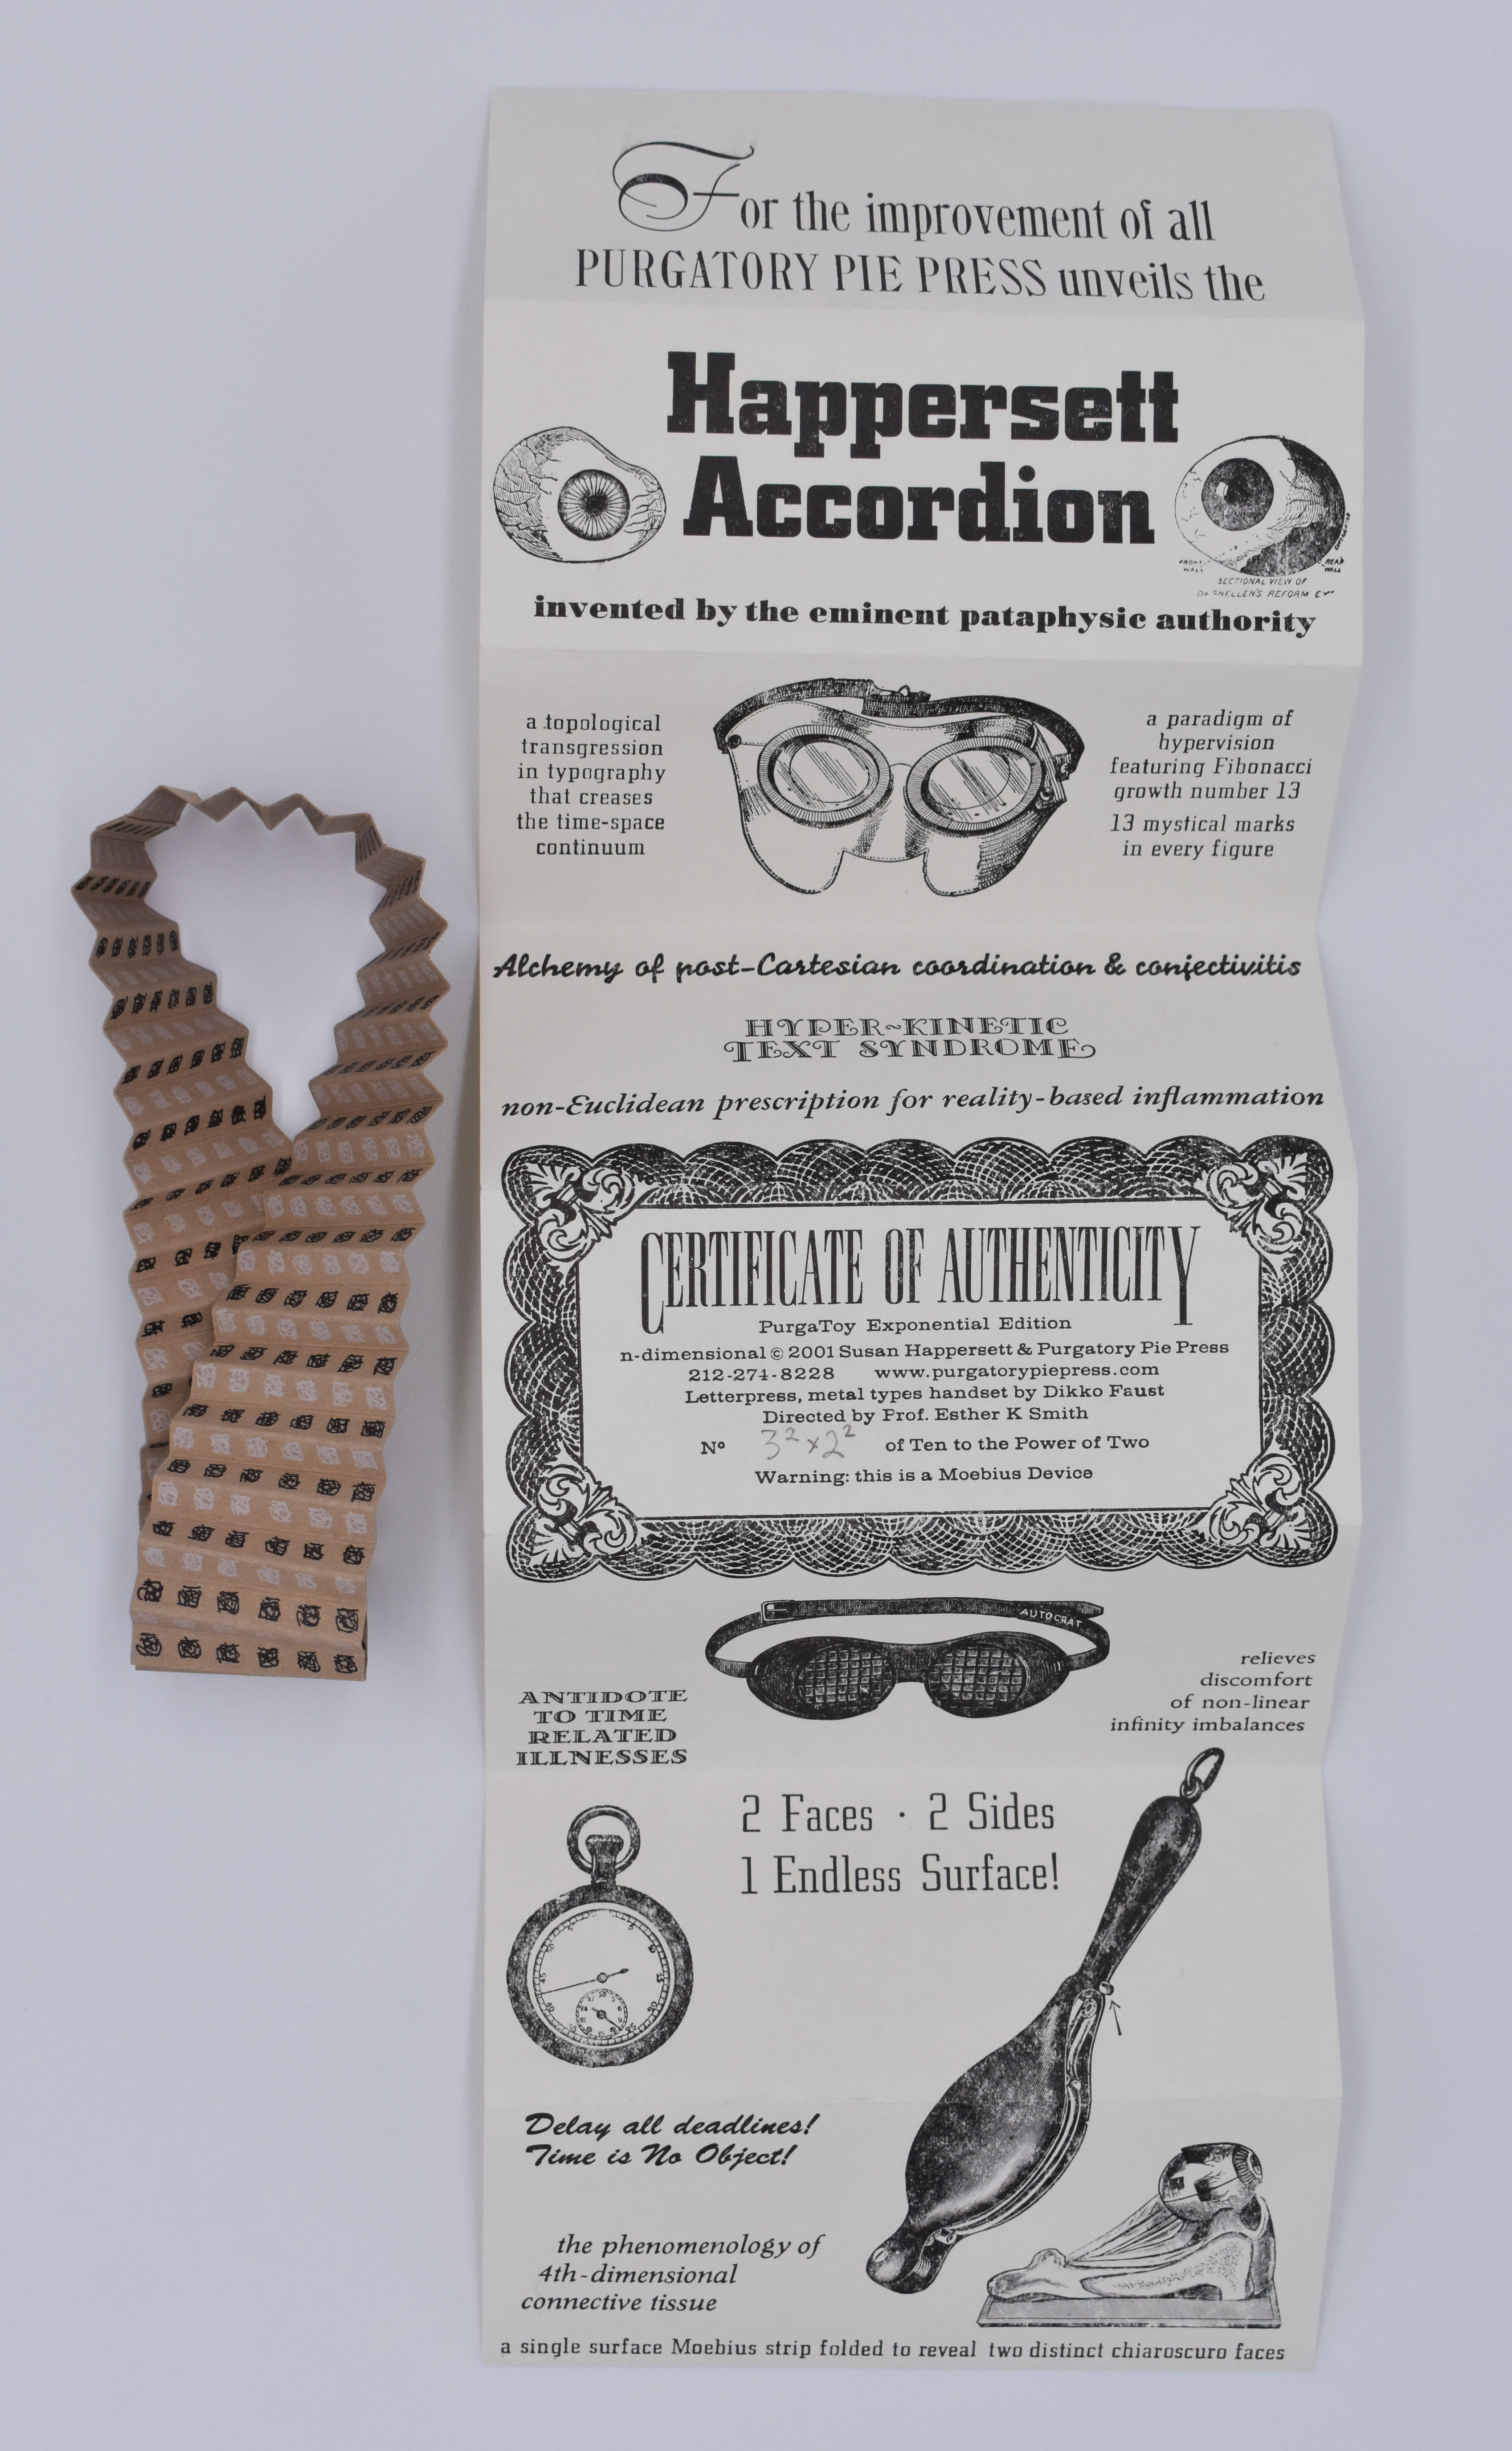 Brown & black mobius strip with accordion folded instructions